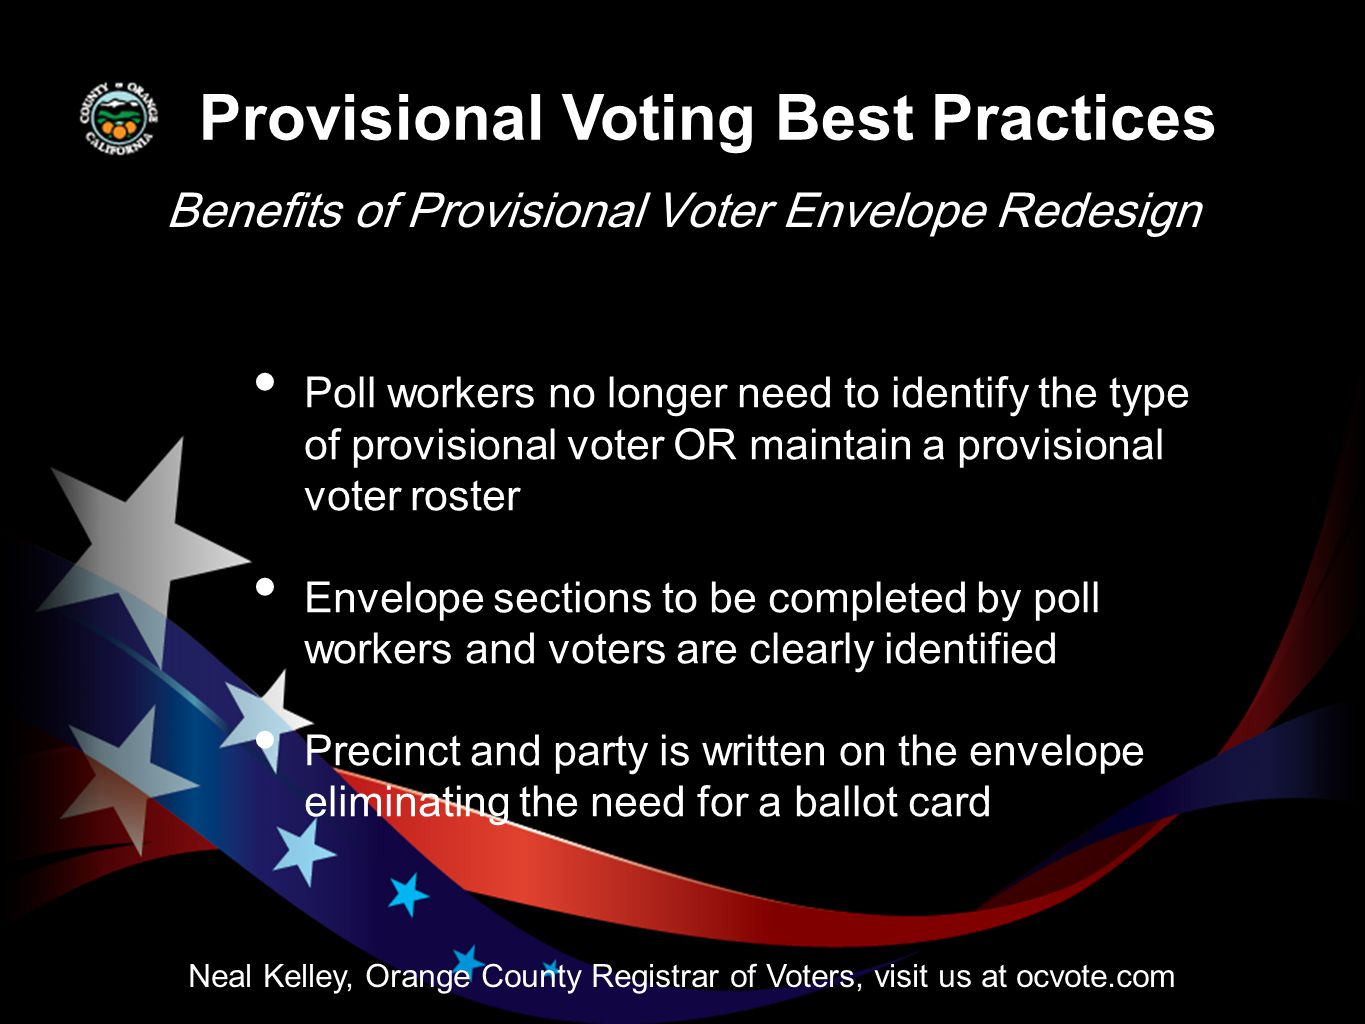 Benefits of Provisional Voter Envelope Redesign Neal Kelley, Orange County Registrar of Voters, visit us at ocvote.com Poll workers no longer need to identify the type of provisional voter OR maintain a provisional voter roster Envelope sections to be completed by poll workers and voters are clearly identified Precinct and party is written on the envelope eliminating the need for a ballot card Provisional Voting Best Practices